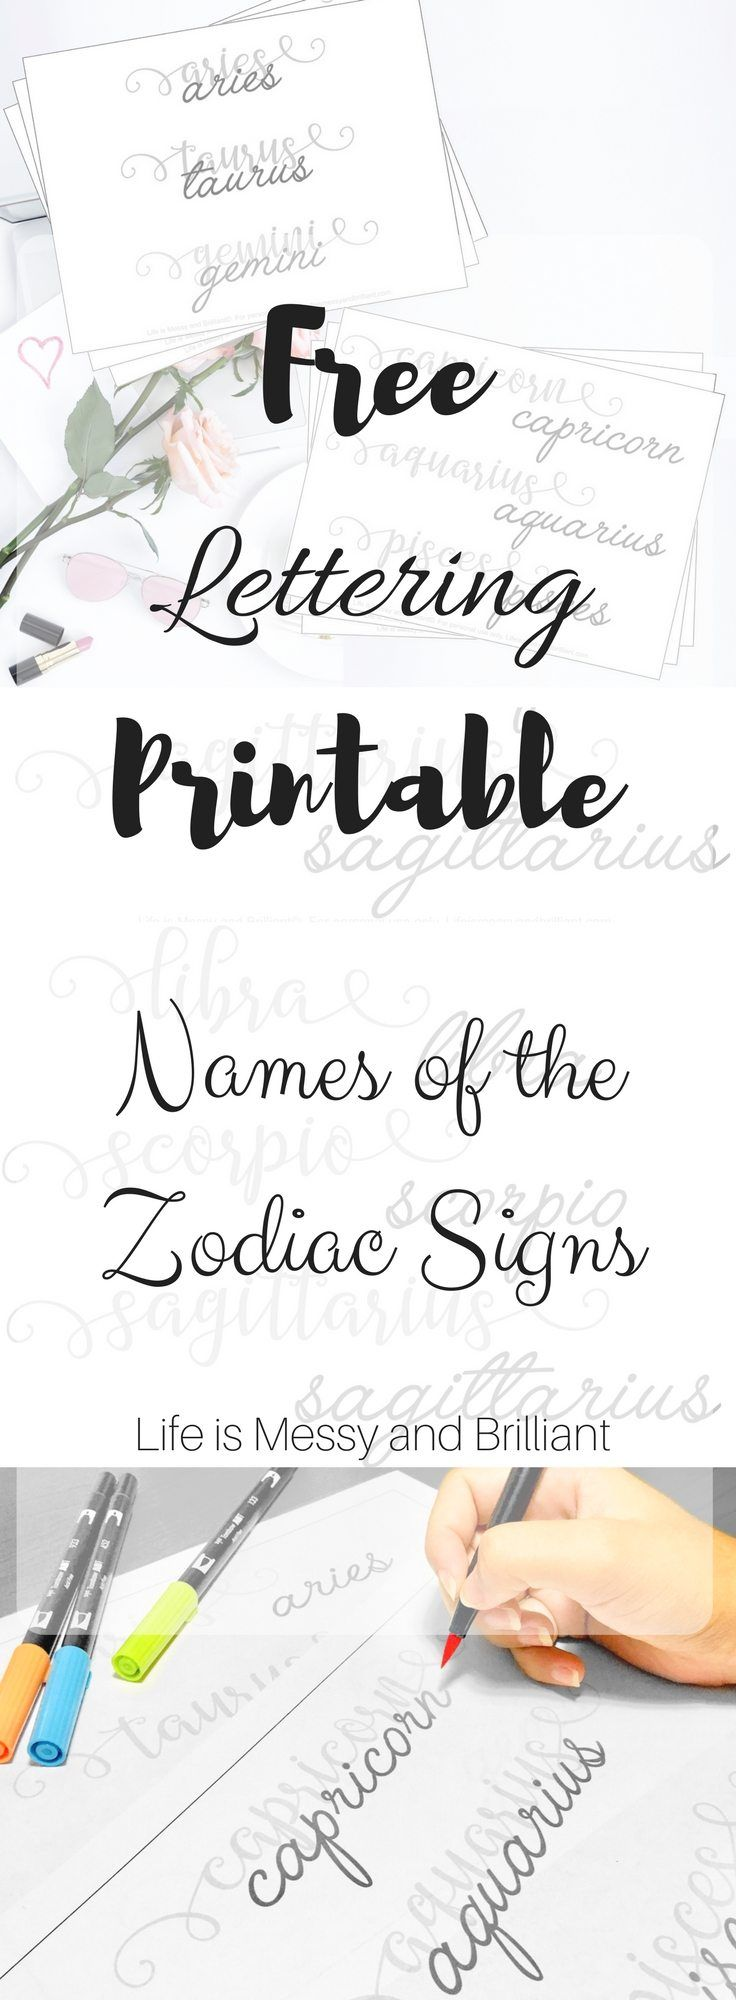 Predownload: Free Names Of The Zodiac Signs Lettering Printable Lettering Hand Lettering Worksheet Hand Lettering Practice Sheets [ 2000 x 736 Pixel ]